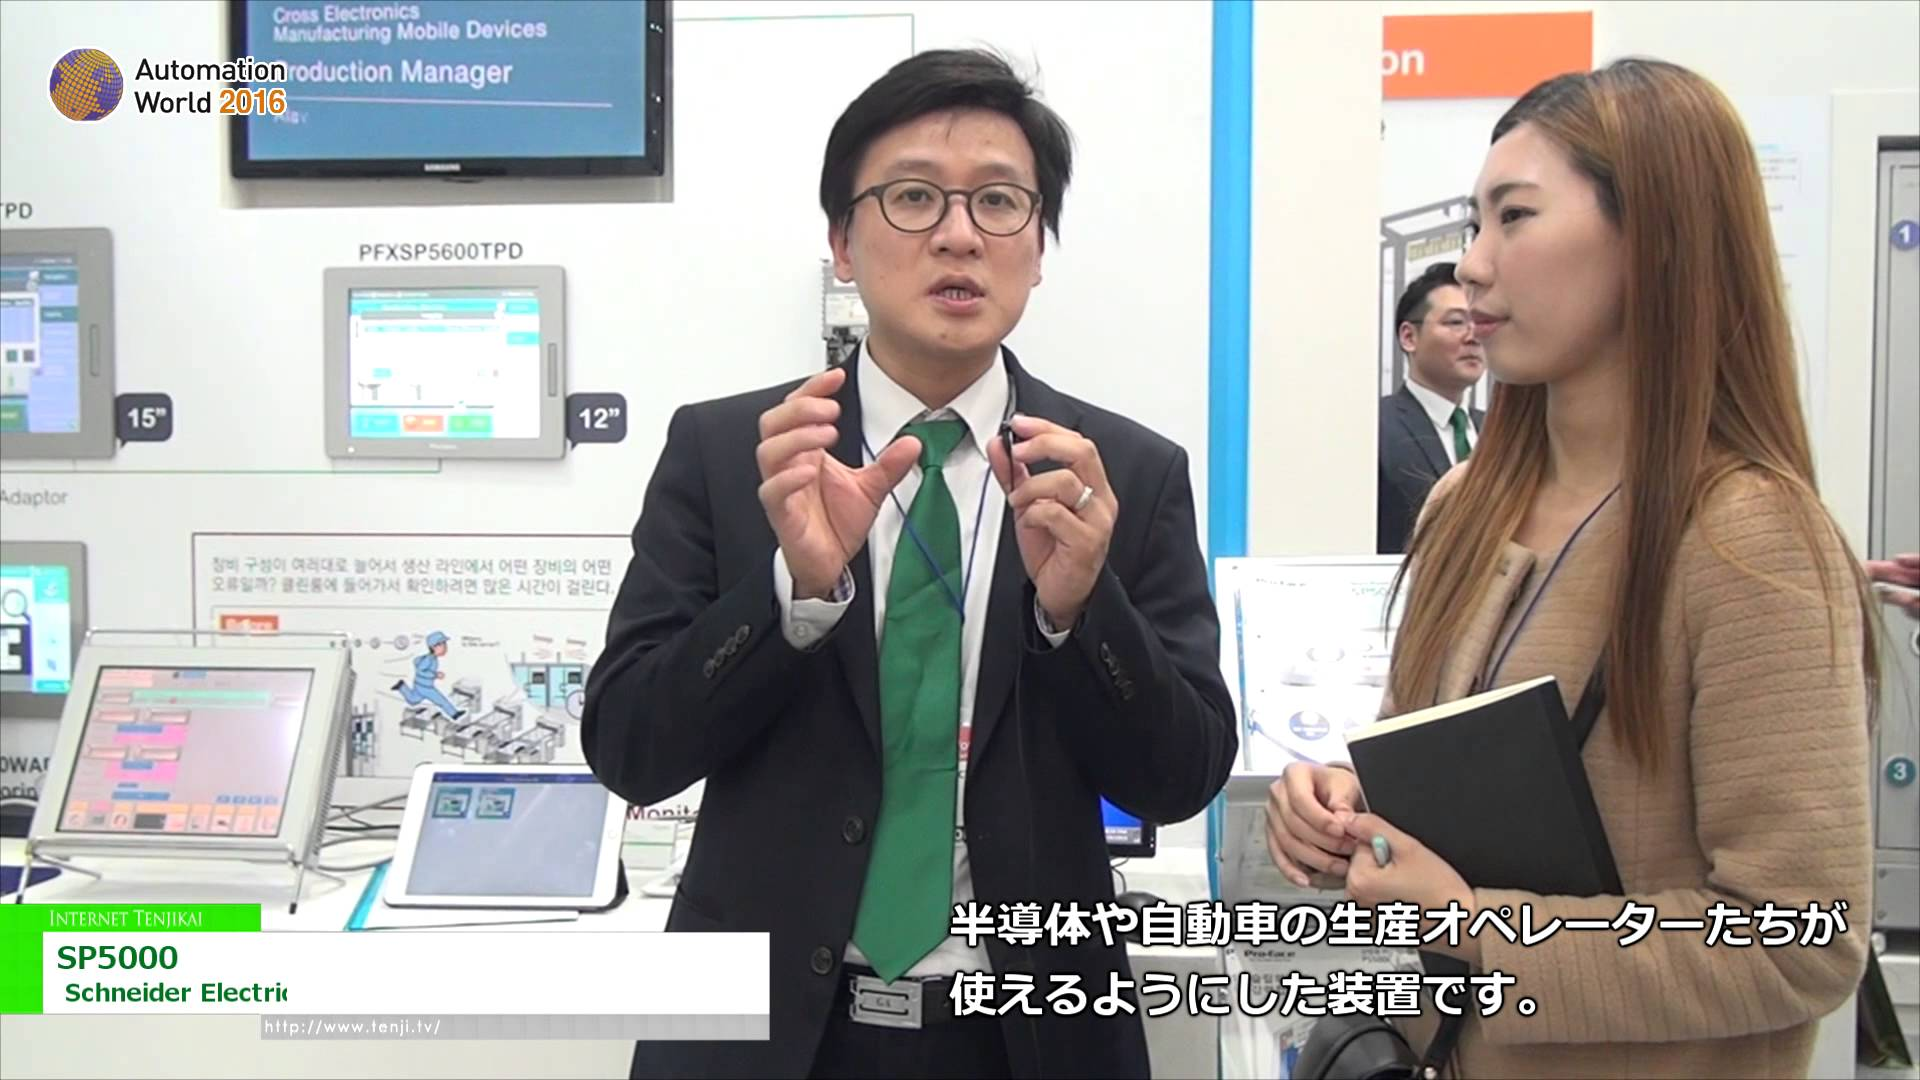 [Automation World 2016] タブレット、Windows対応生産管理ネットワークゲートウェイ端末「SP5000」 – ​Schneider Electric